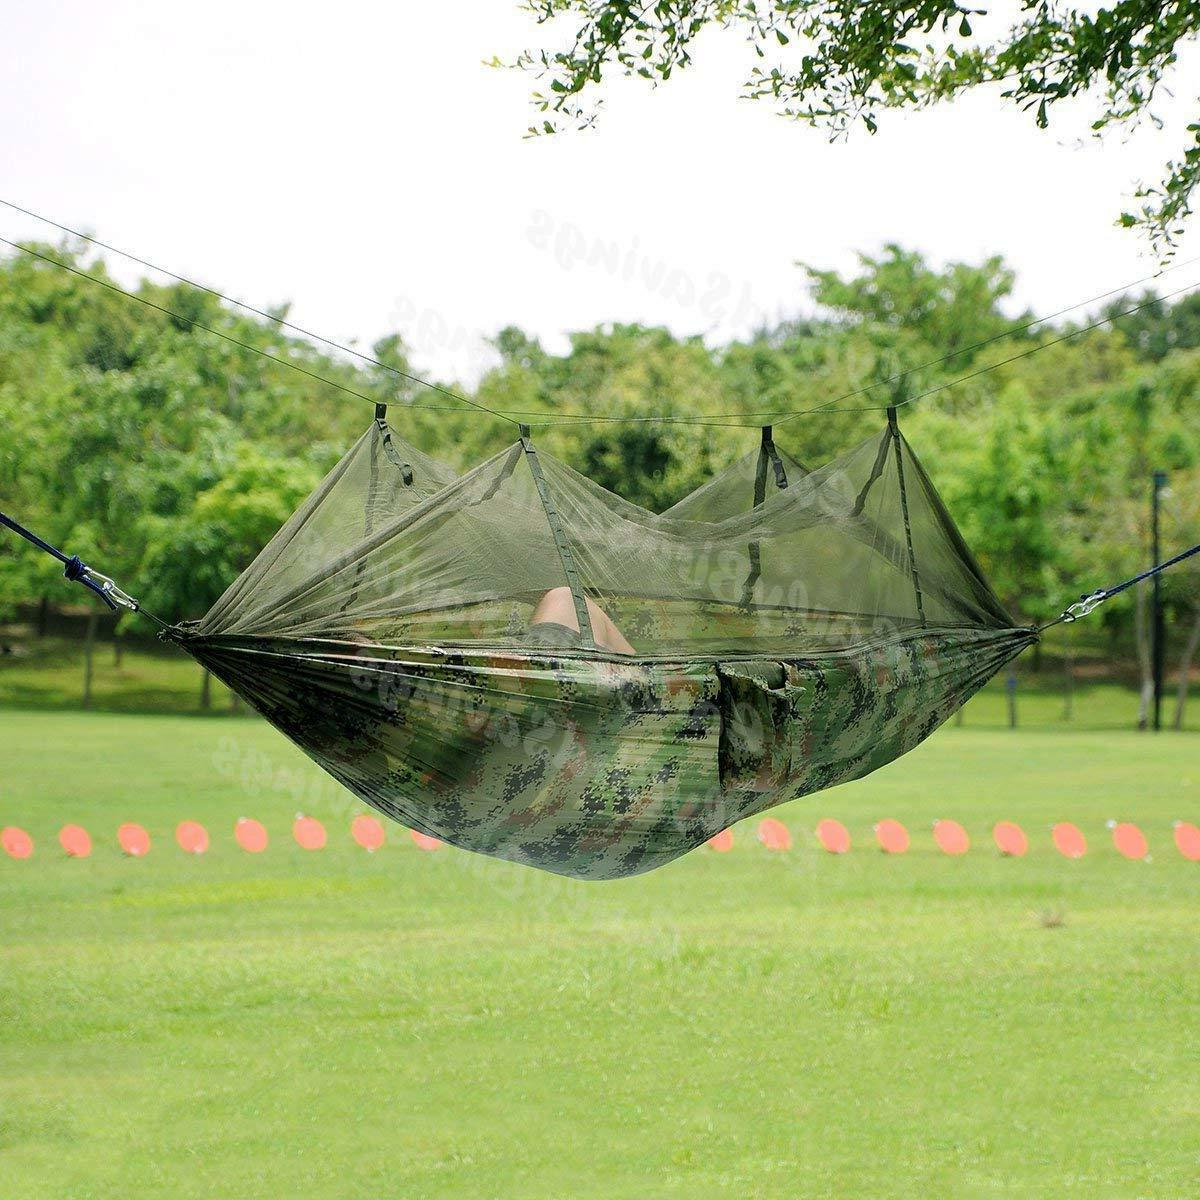 Camping Hammock Net 2 Hanging Bed Swing Chair Outdoor